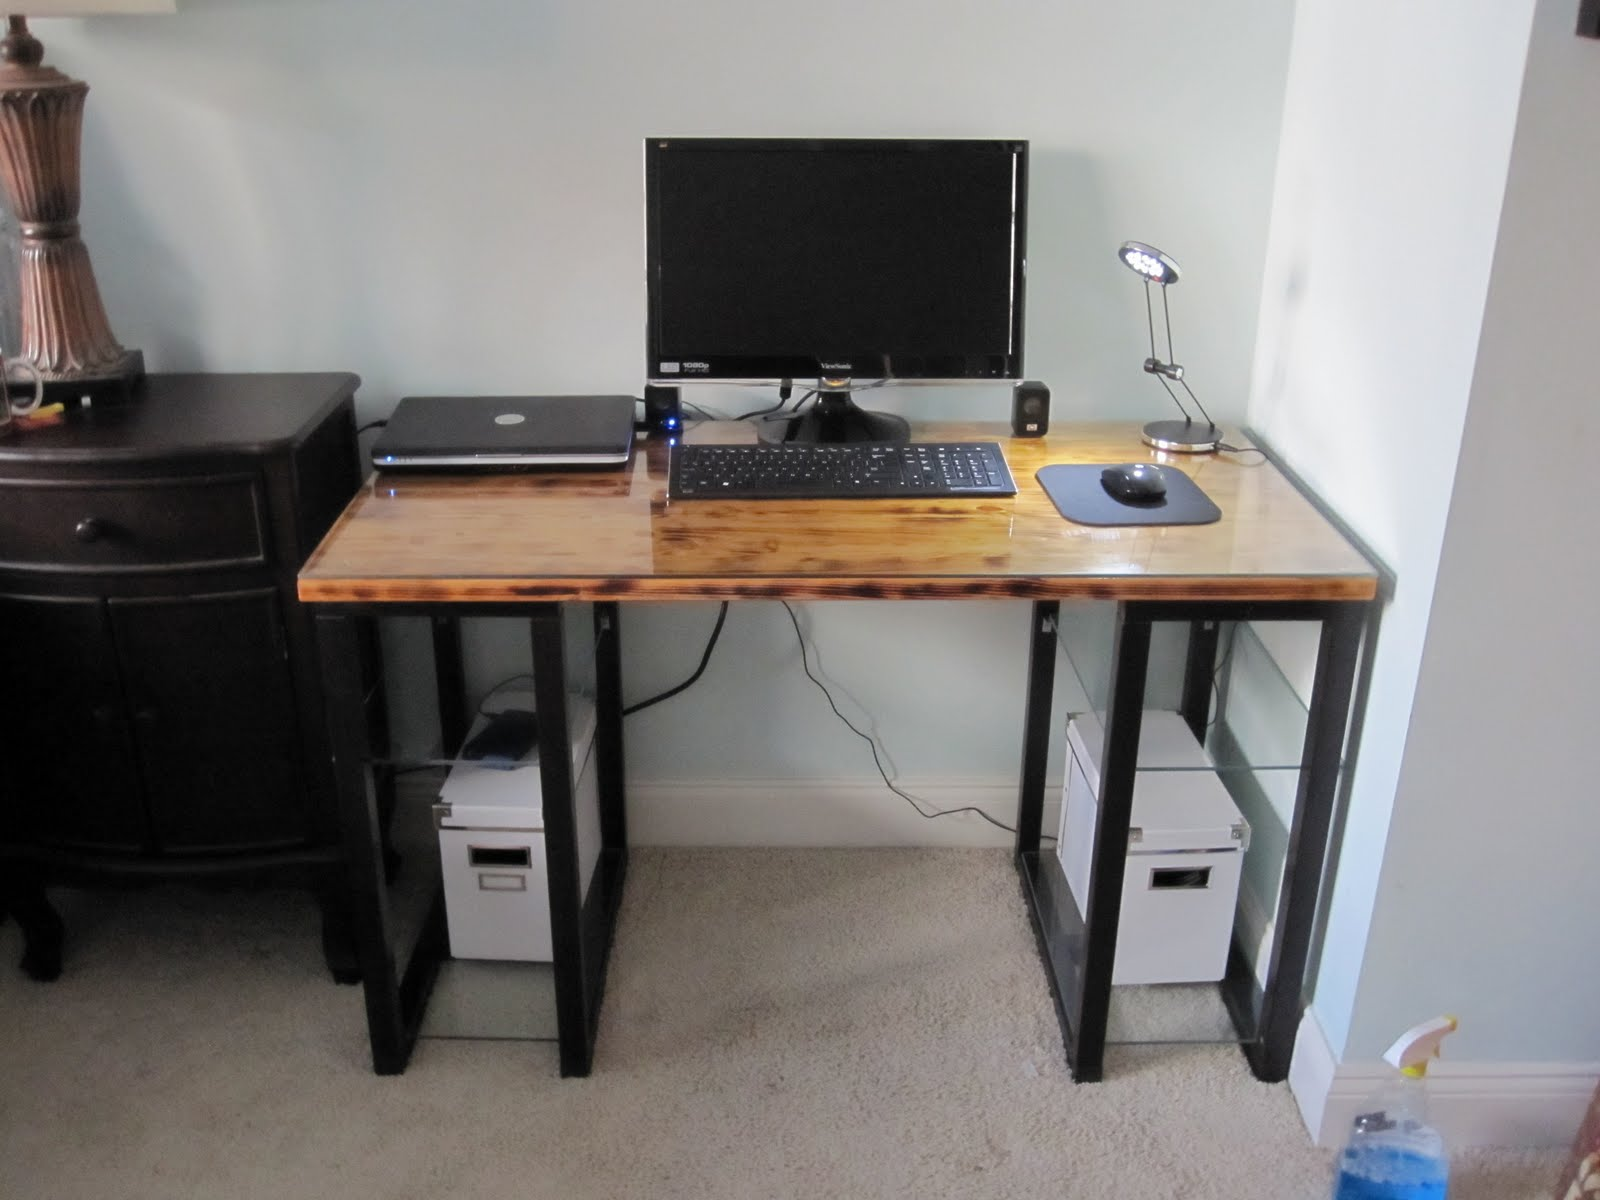 vika desk goes glam ikea hackers ikea hackers. Black Bedroom Furniture Sets. Home Design Ideas